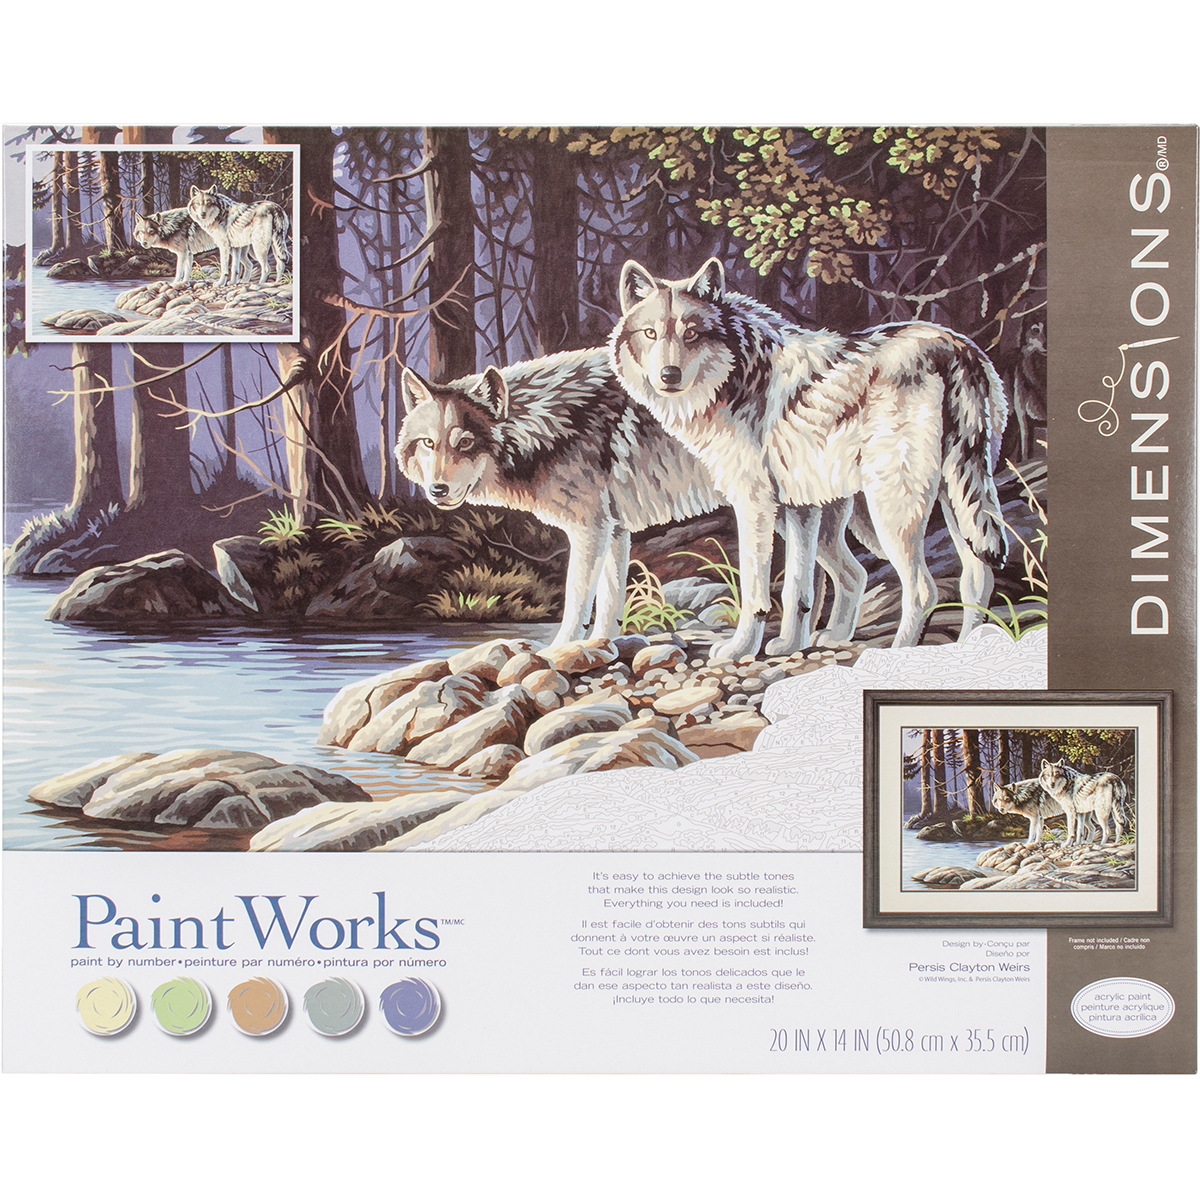 Paint Works Paint By Number Kit 20X14-Gray Wolves